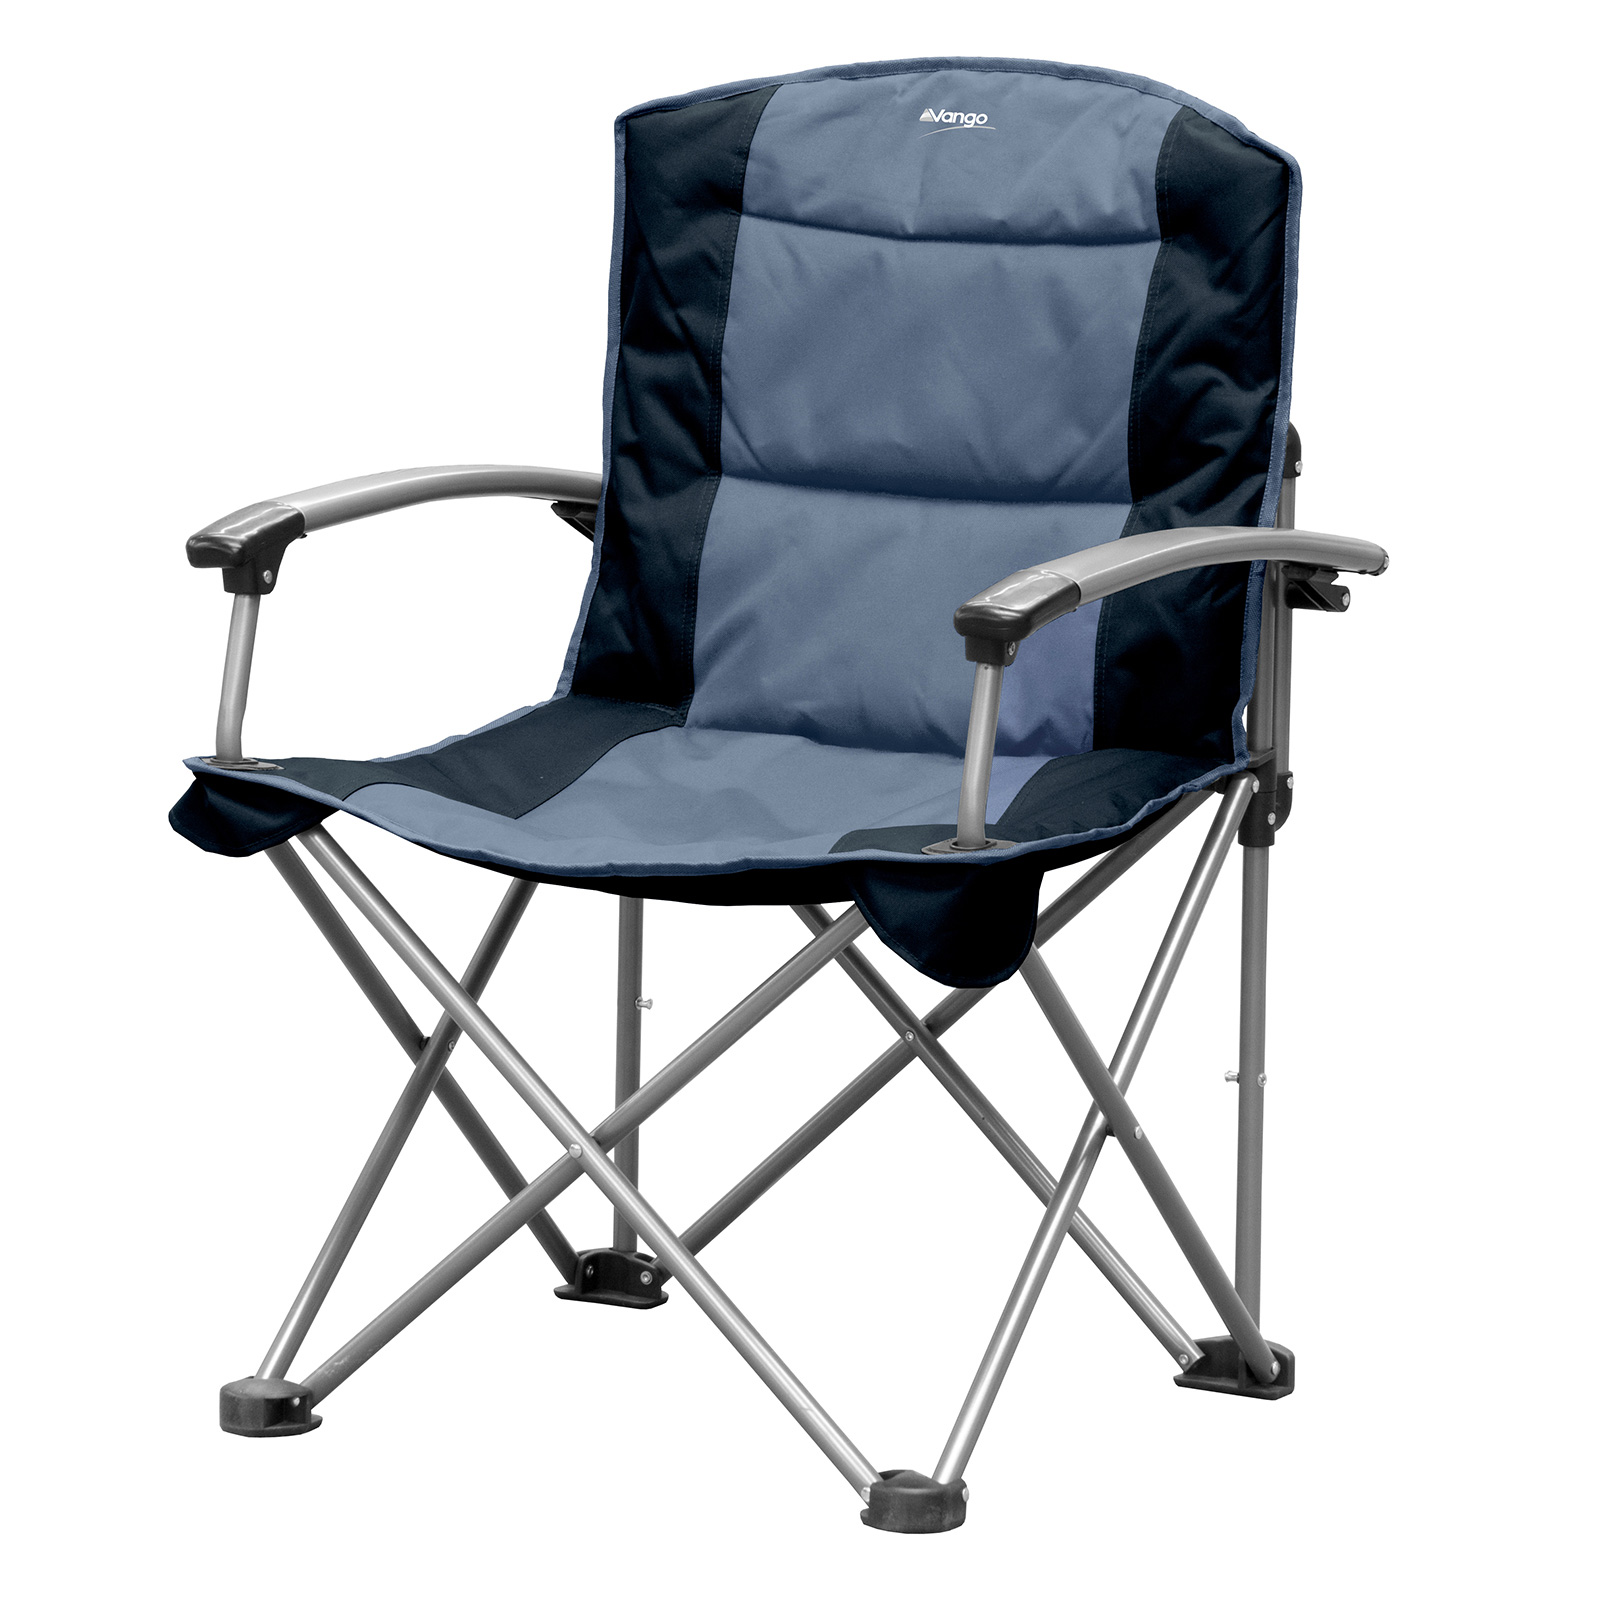 Vango Kraken Camping Chair 180kg Limit